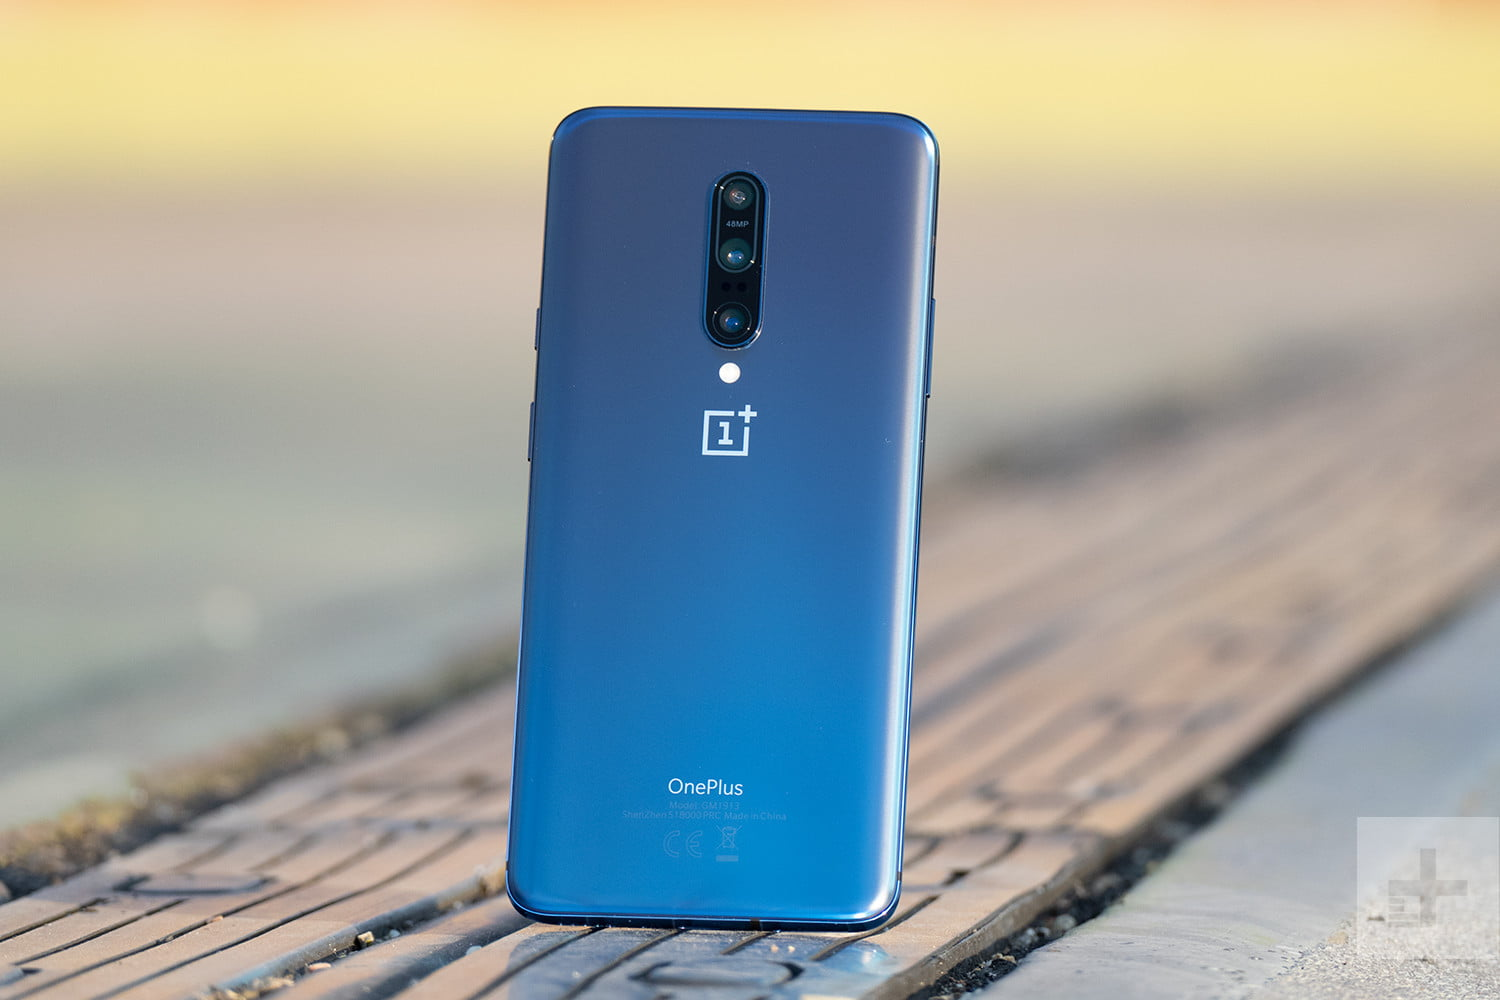 oneplus is losing its best feature with the oneplus 7 pro